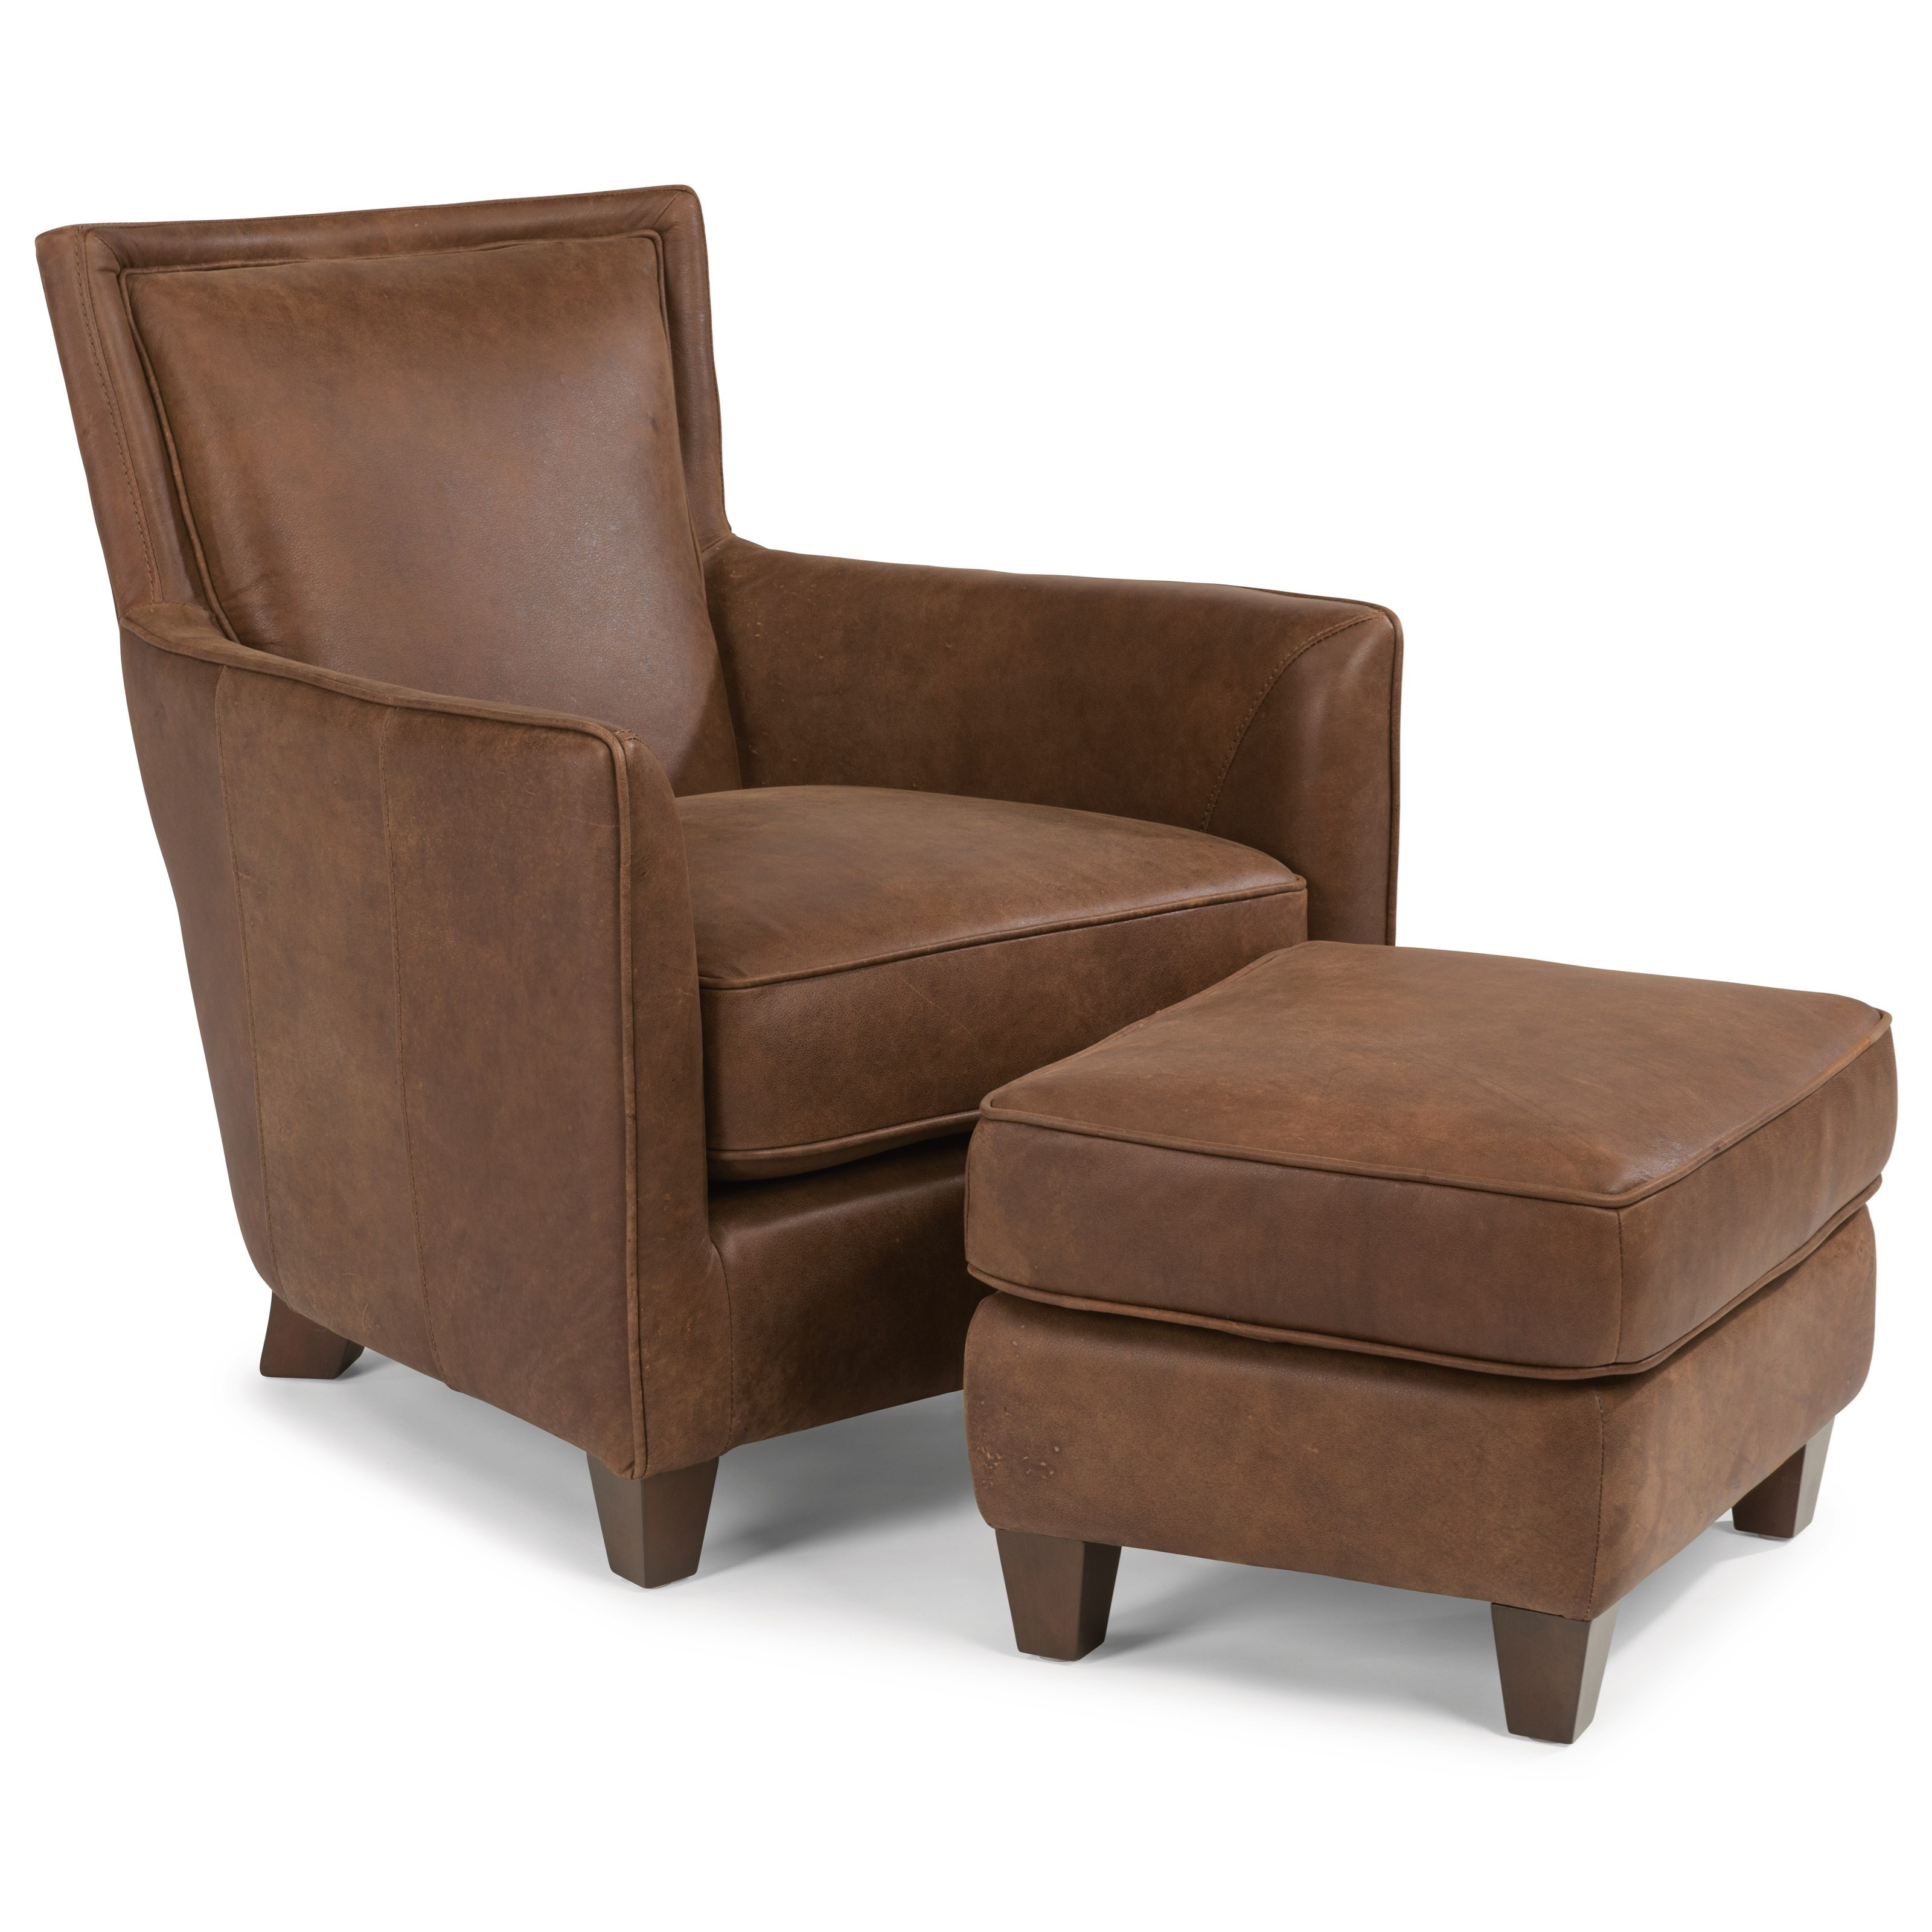 Flexsteel latitudes kingston contemporary leather chair for Furniture kingston